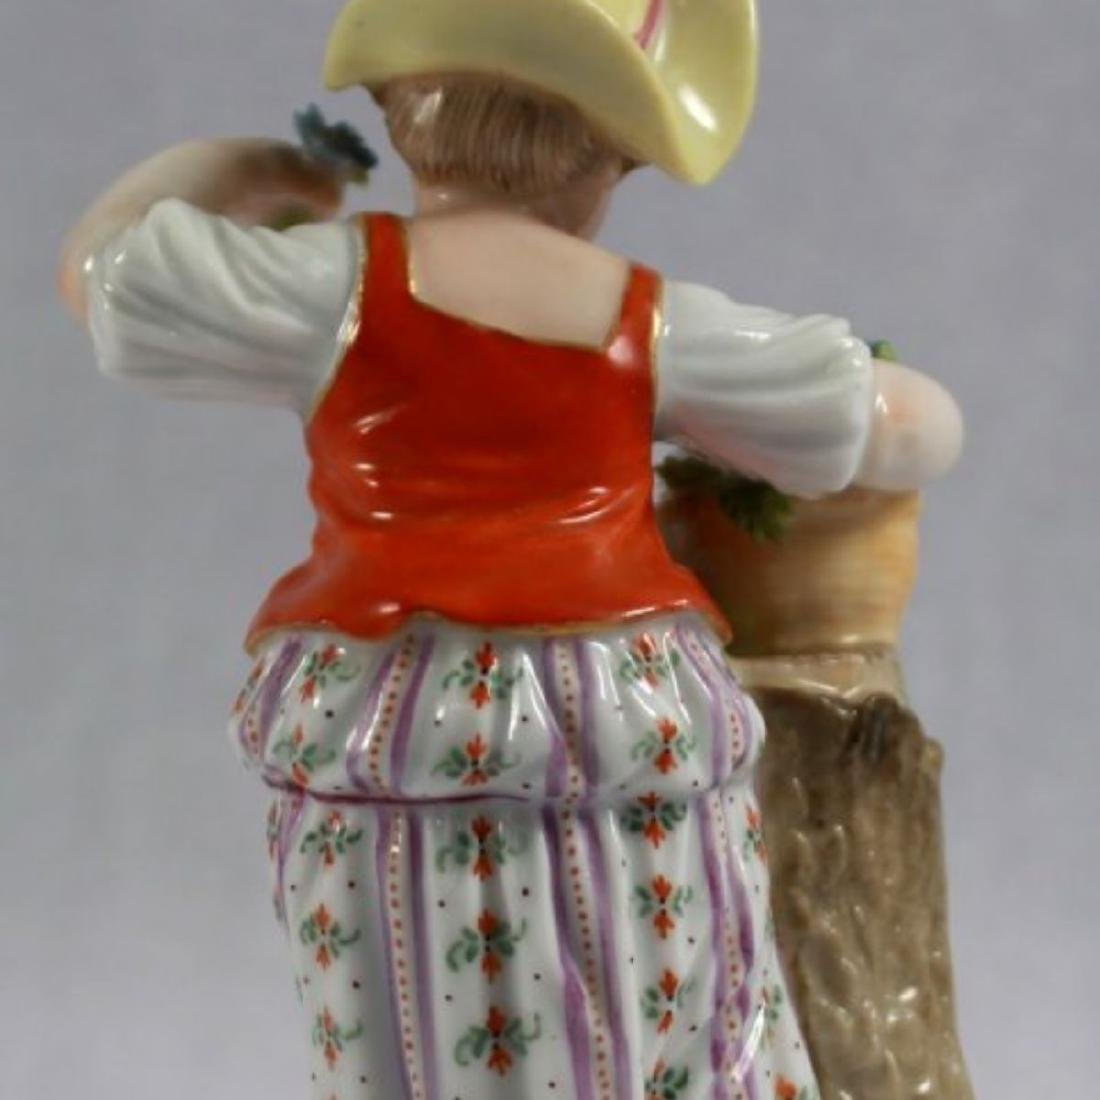 ANTIQUE 19TH C. MEISSEN PORCELAIN FIGURE OF A GIRL - 4